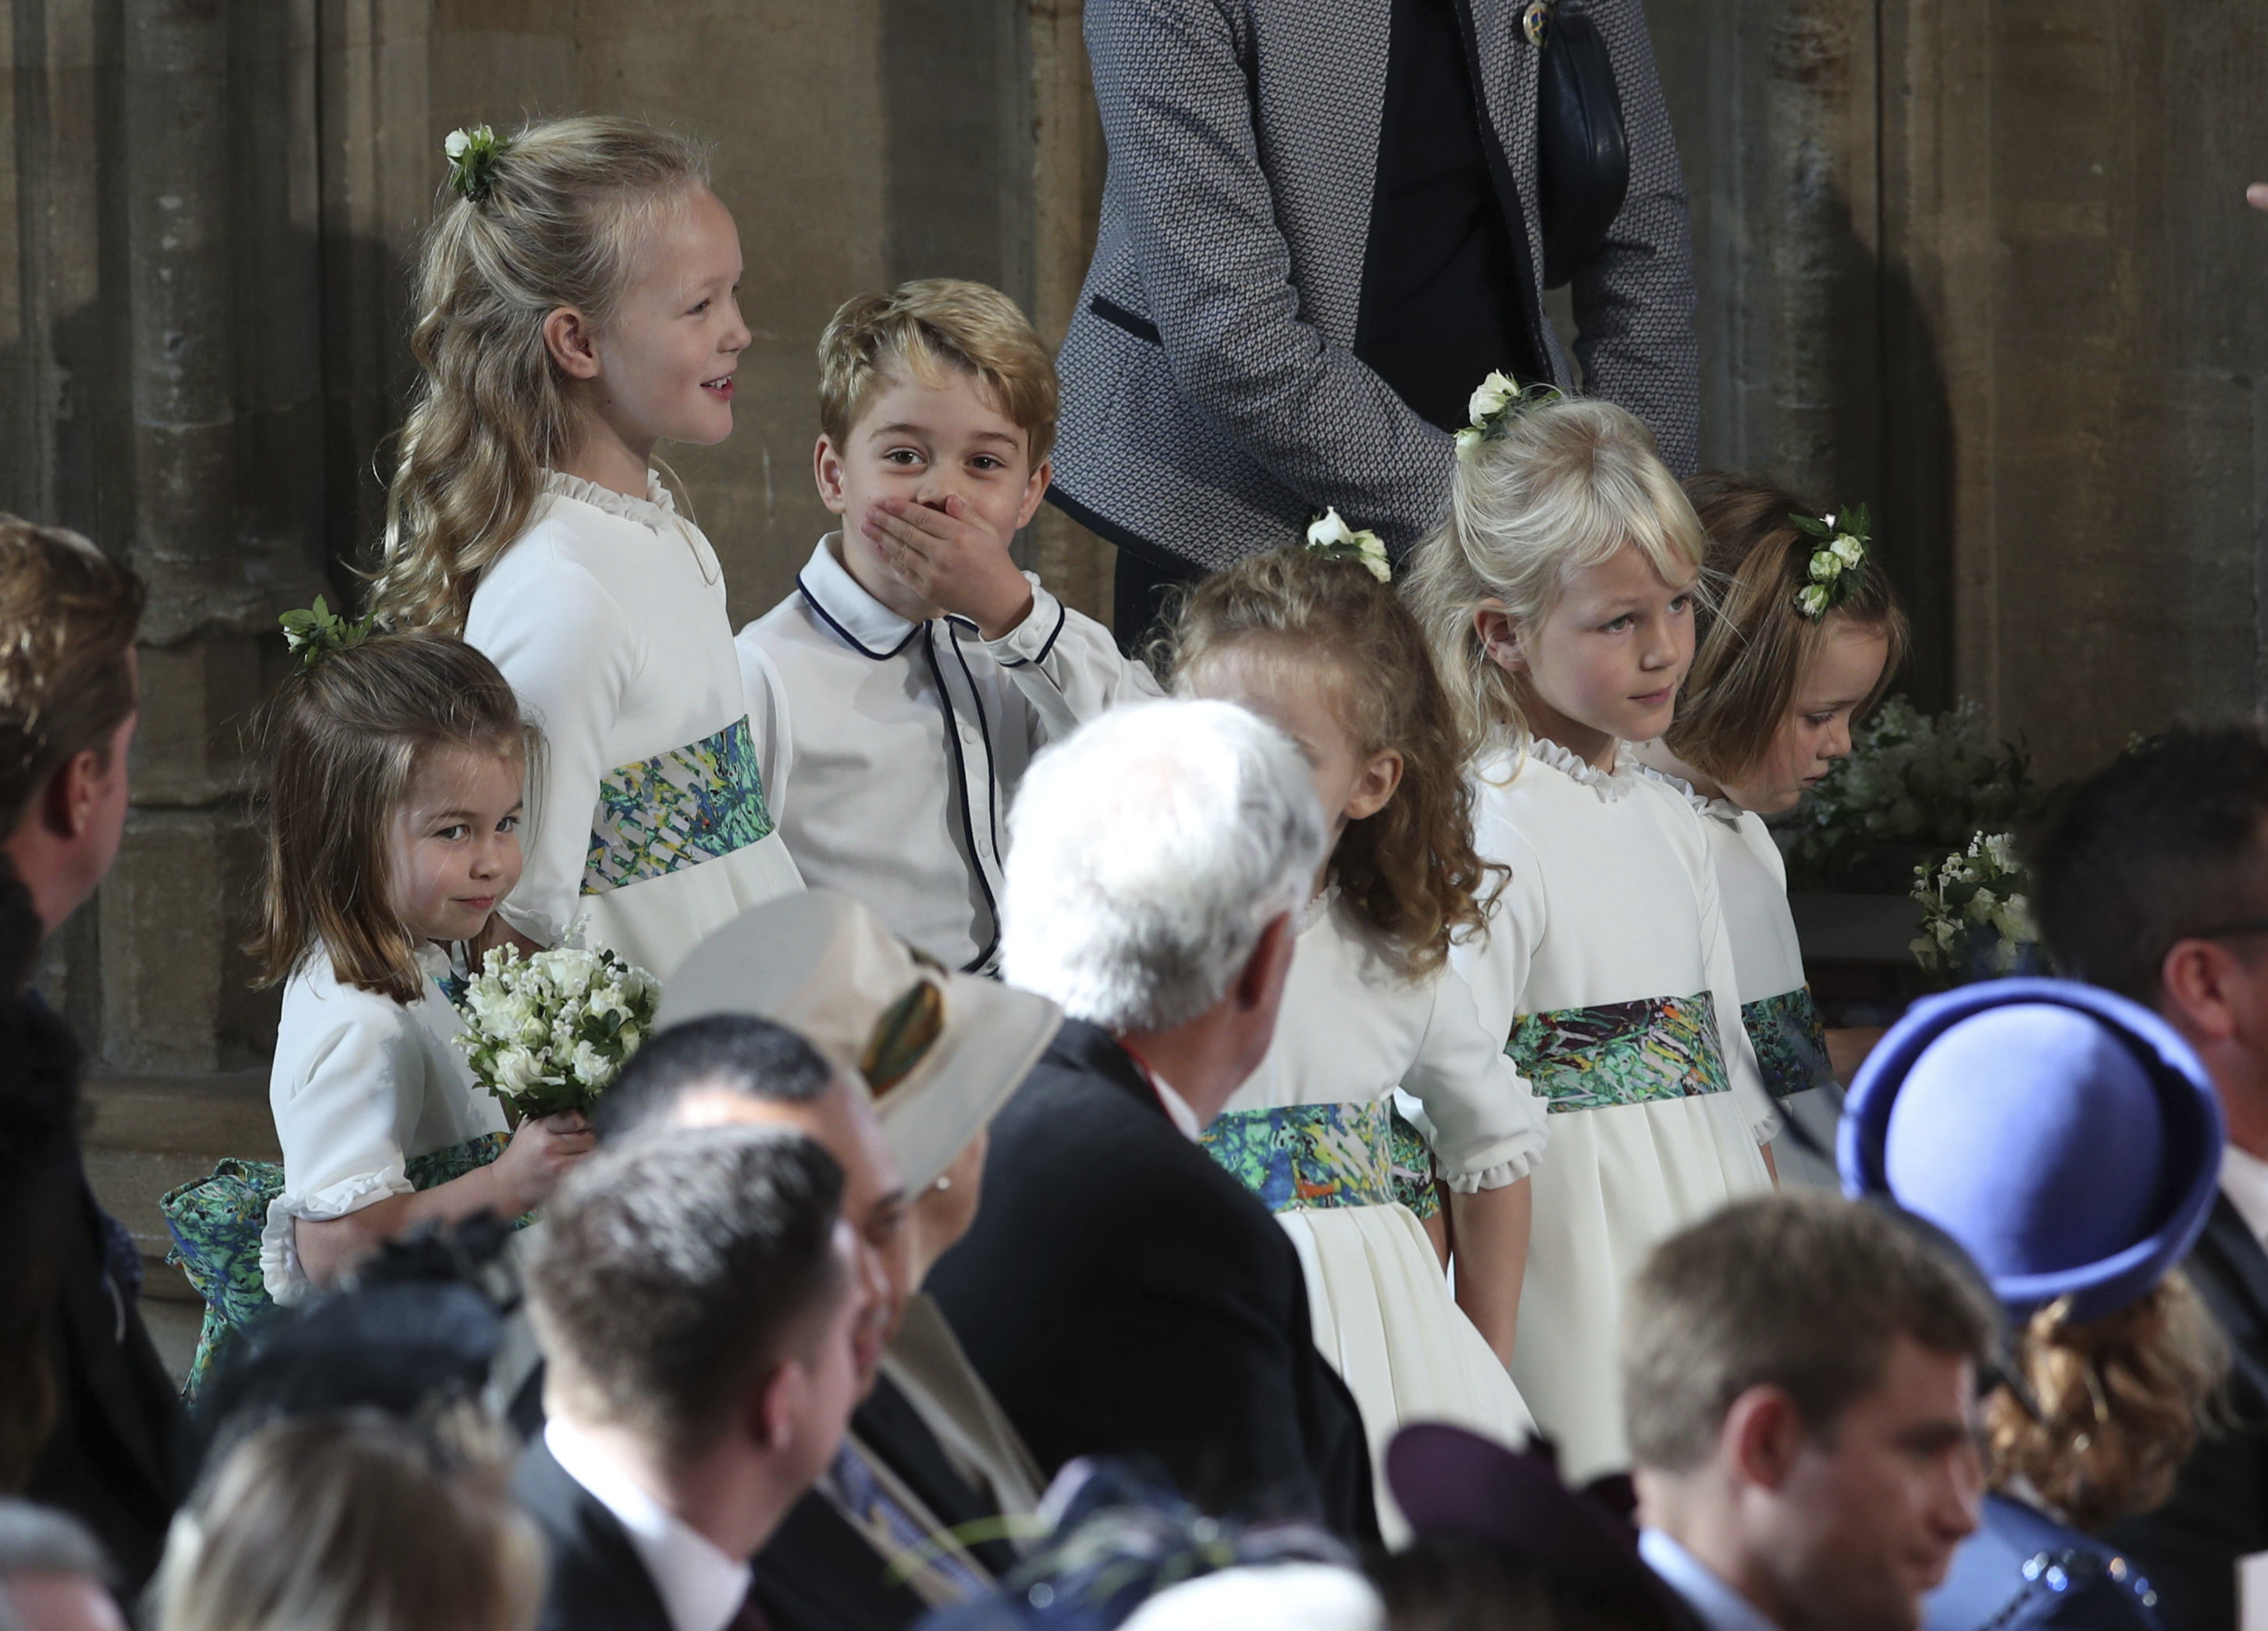 <div class='meta'><div class='origin-logo' data-origin='none'></div><span class='caption-text' data-credit='Yui Mok, Pool via AP'>The bridesmaids and page boys, including Prince George and Princess Charlotte, arrive for the wedding of Princess Eugenie of York and Jack Brooksbank in St George's Chapel.</span></div>